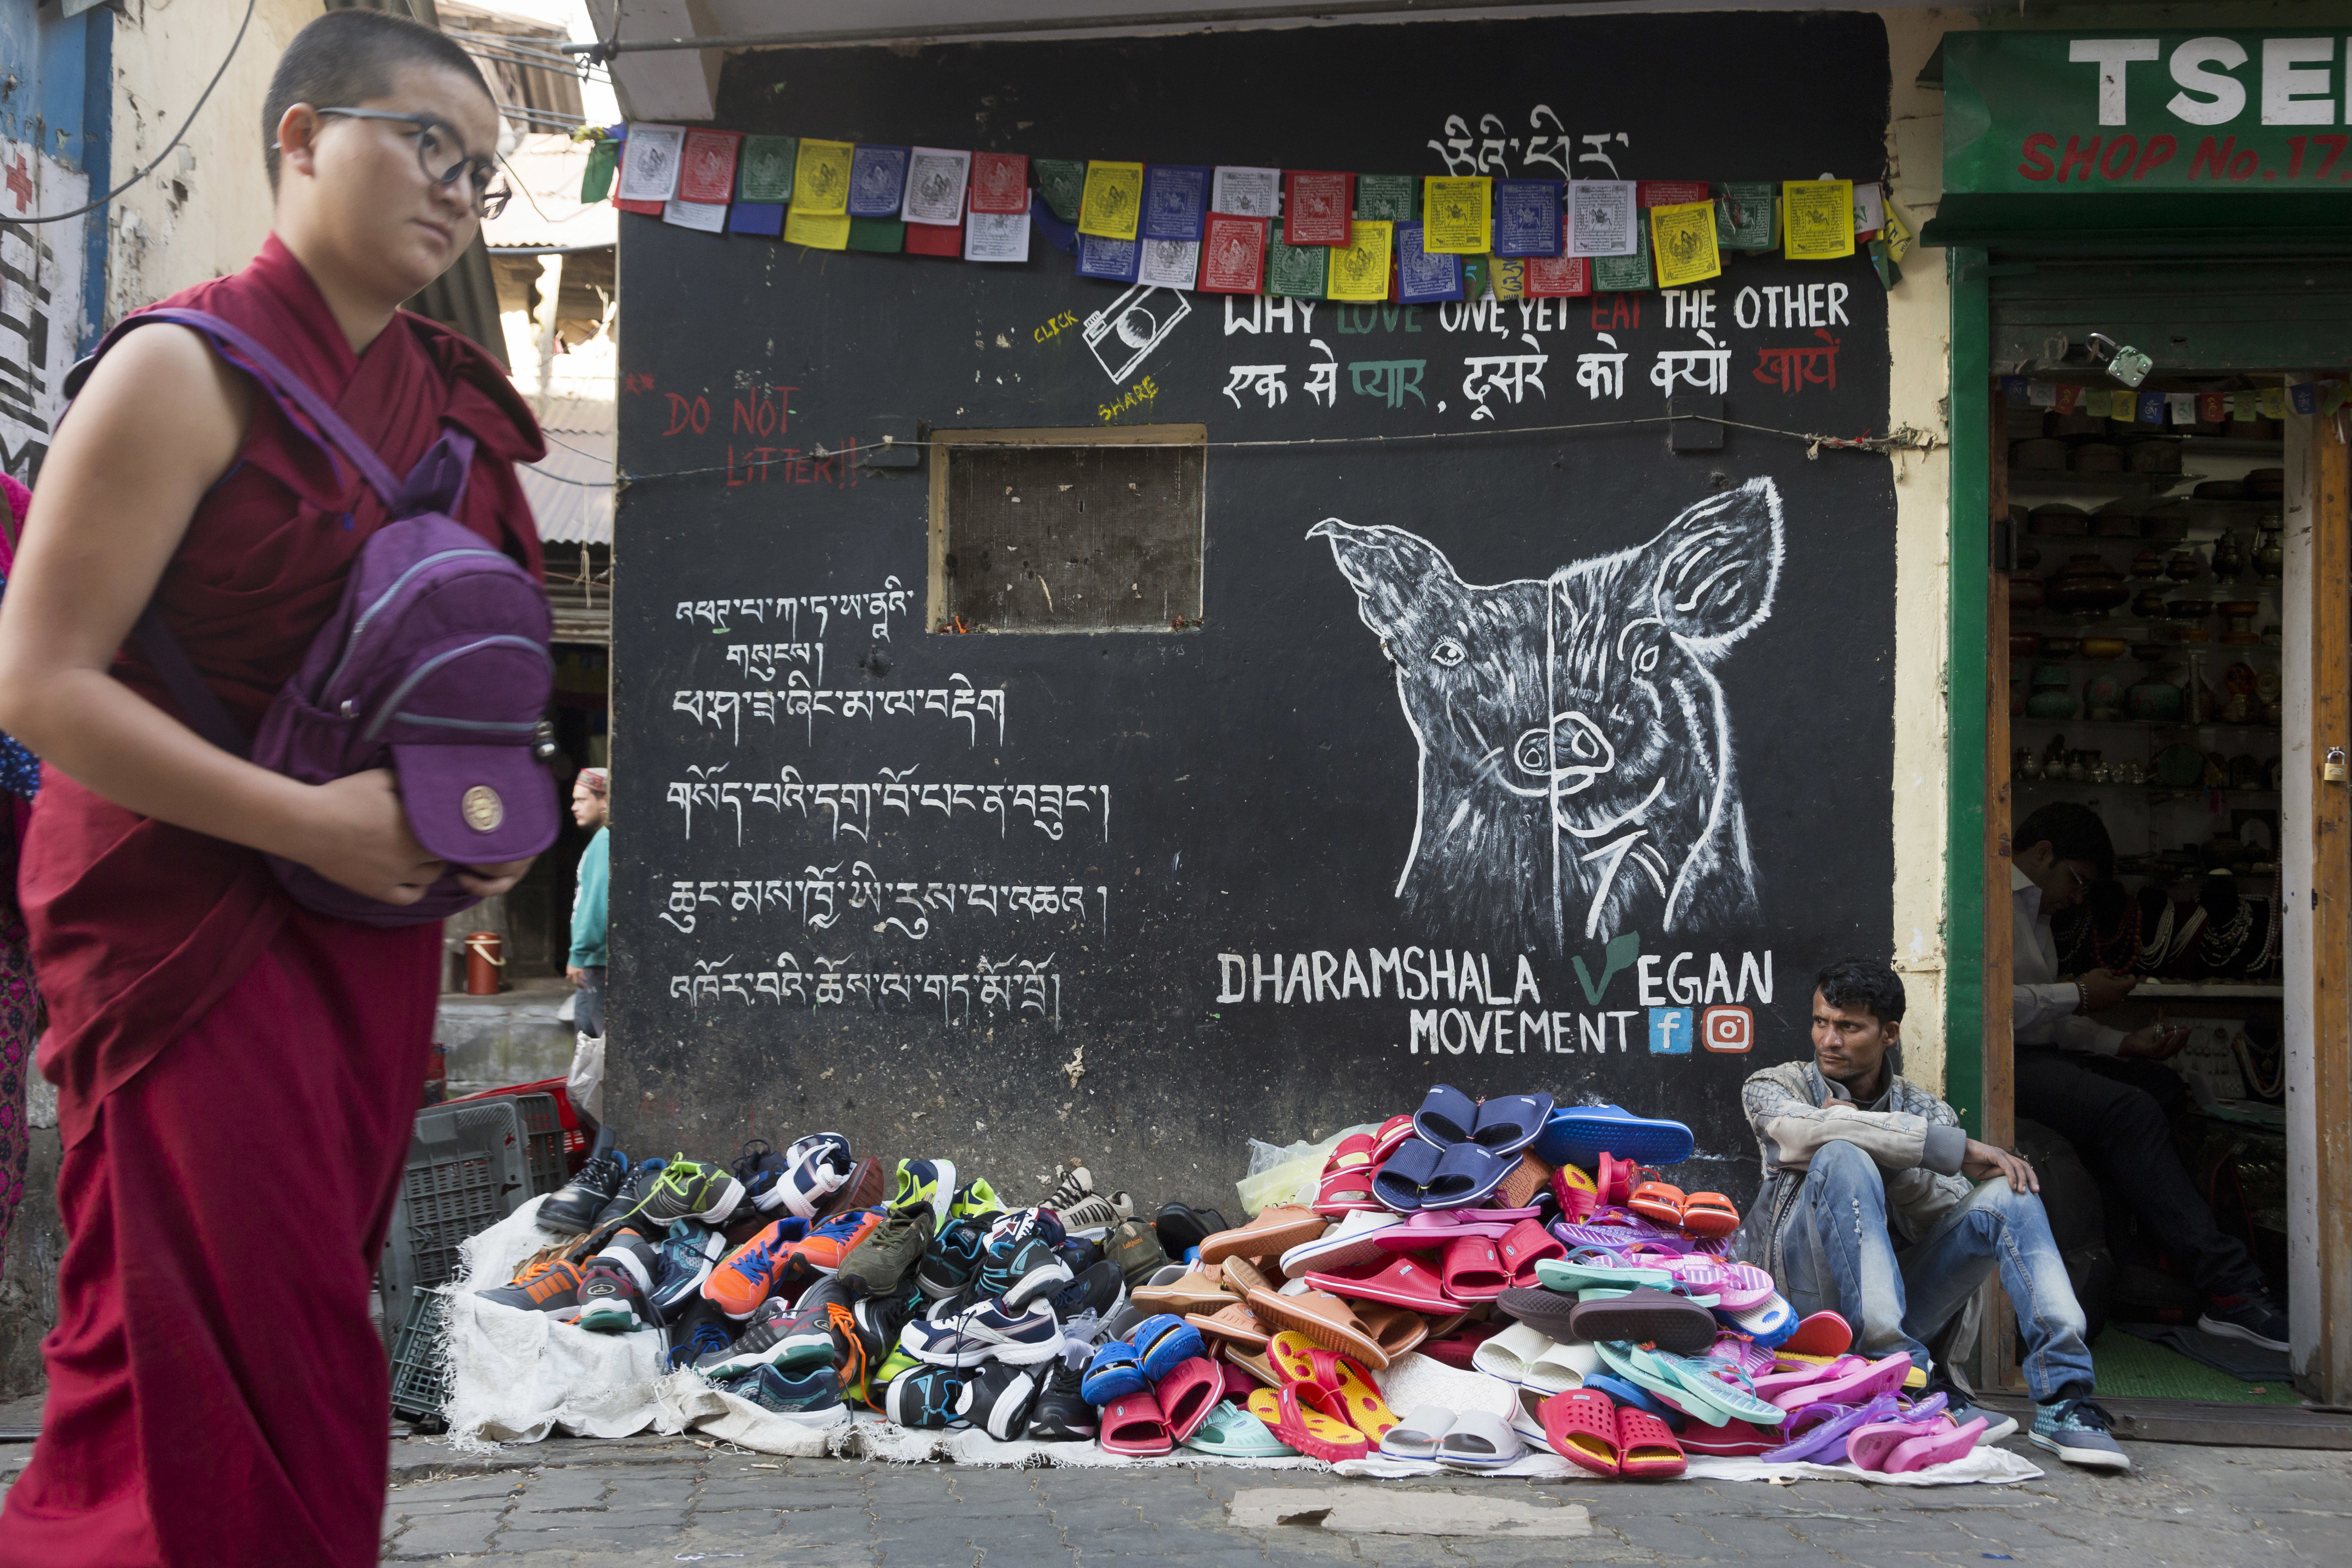 A man sells footwear in front of a wall painted with a message from a vegan society by a roadside in Dharmsala - AP